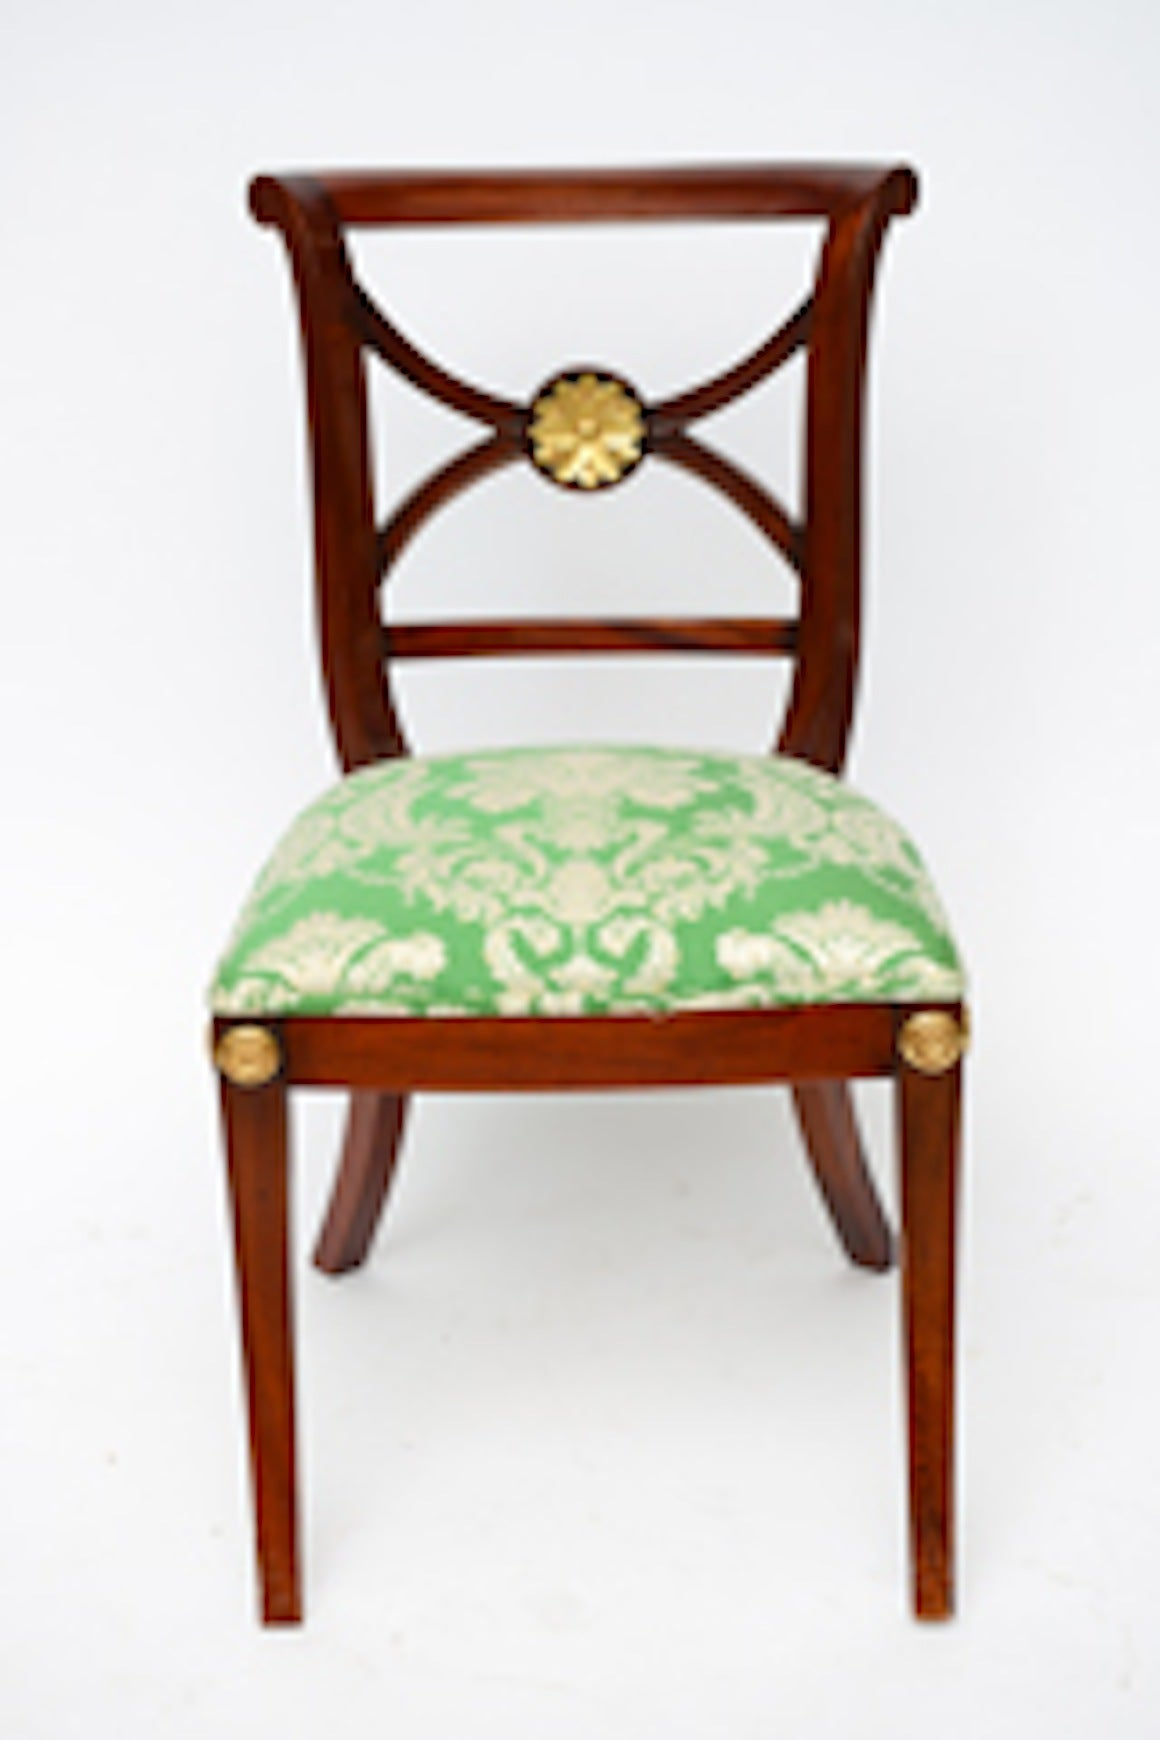 Mahogany Elegant Regency Klismos Dining Chairs, Highly Carved Gilt Details, 19th Century For Sale